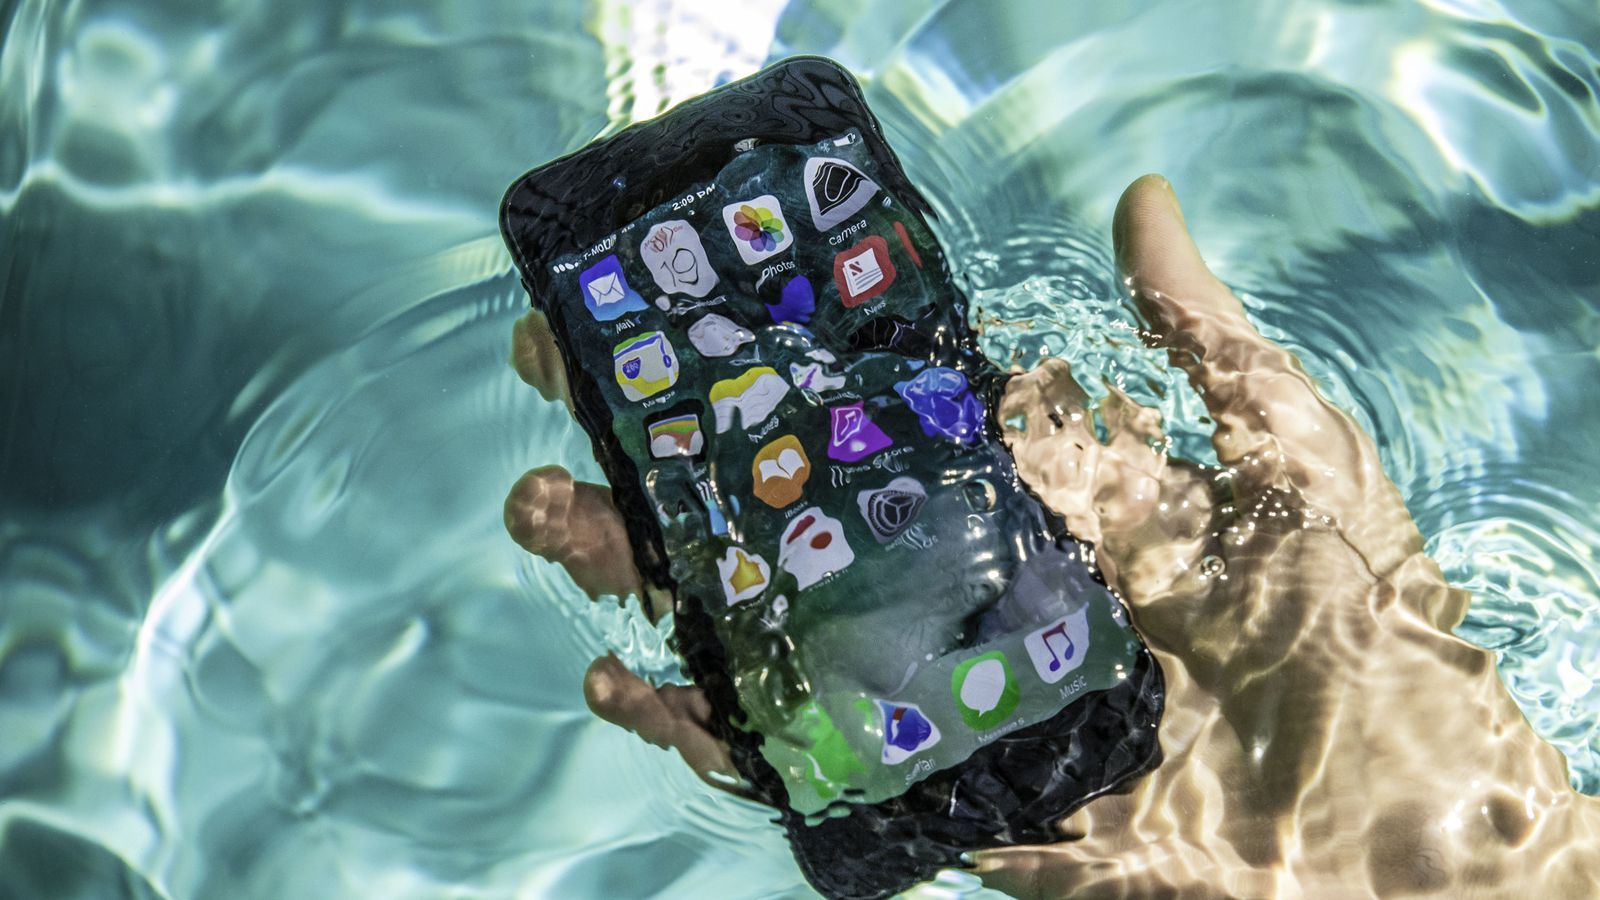 reputable site 60823 26317 Is the iPhone 7 completely waterproof? | Art and Style that Inspires ...